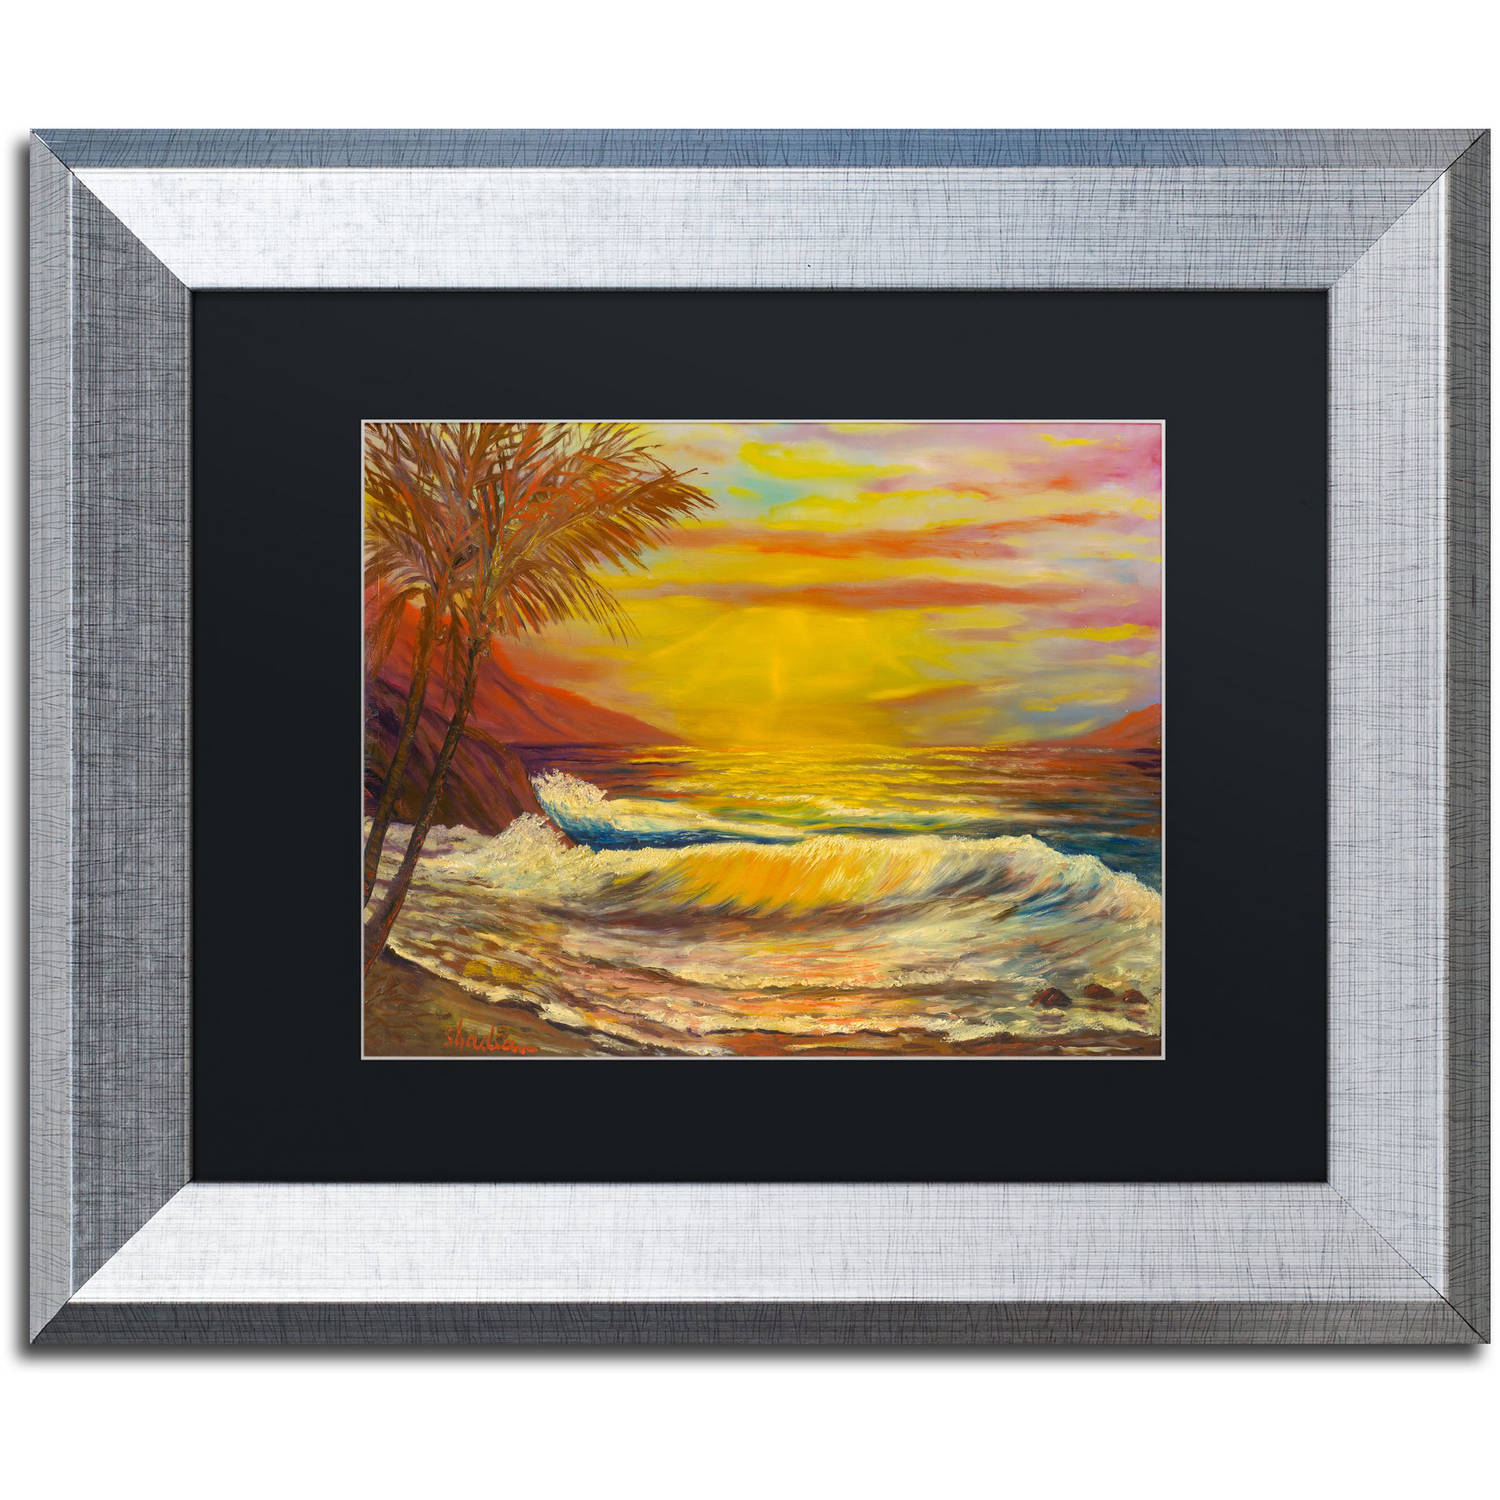 Trademark Fine Art 'A Tropical Lagoon' Canvas Art by Manor Shadian, Black Matte, Silver Frame